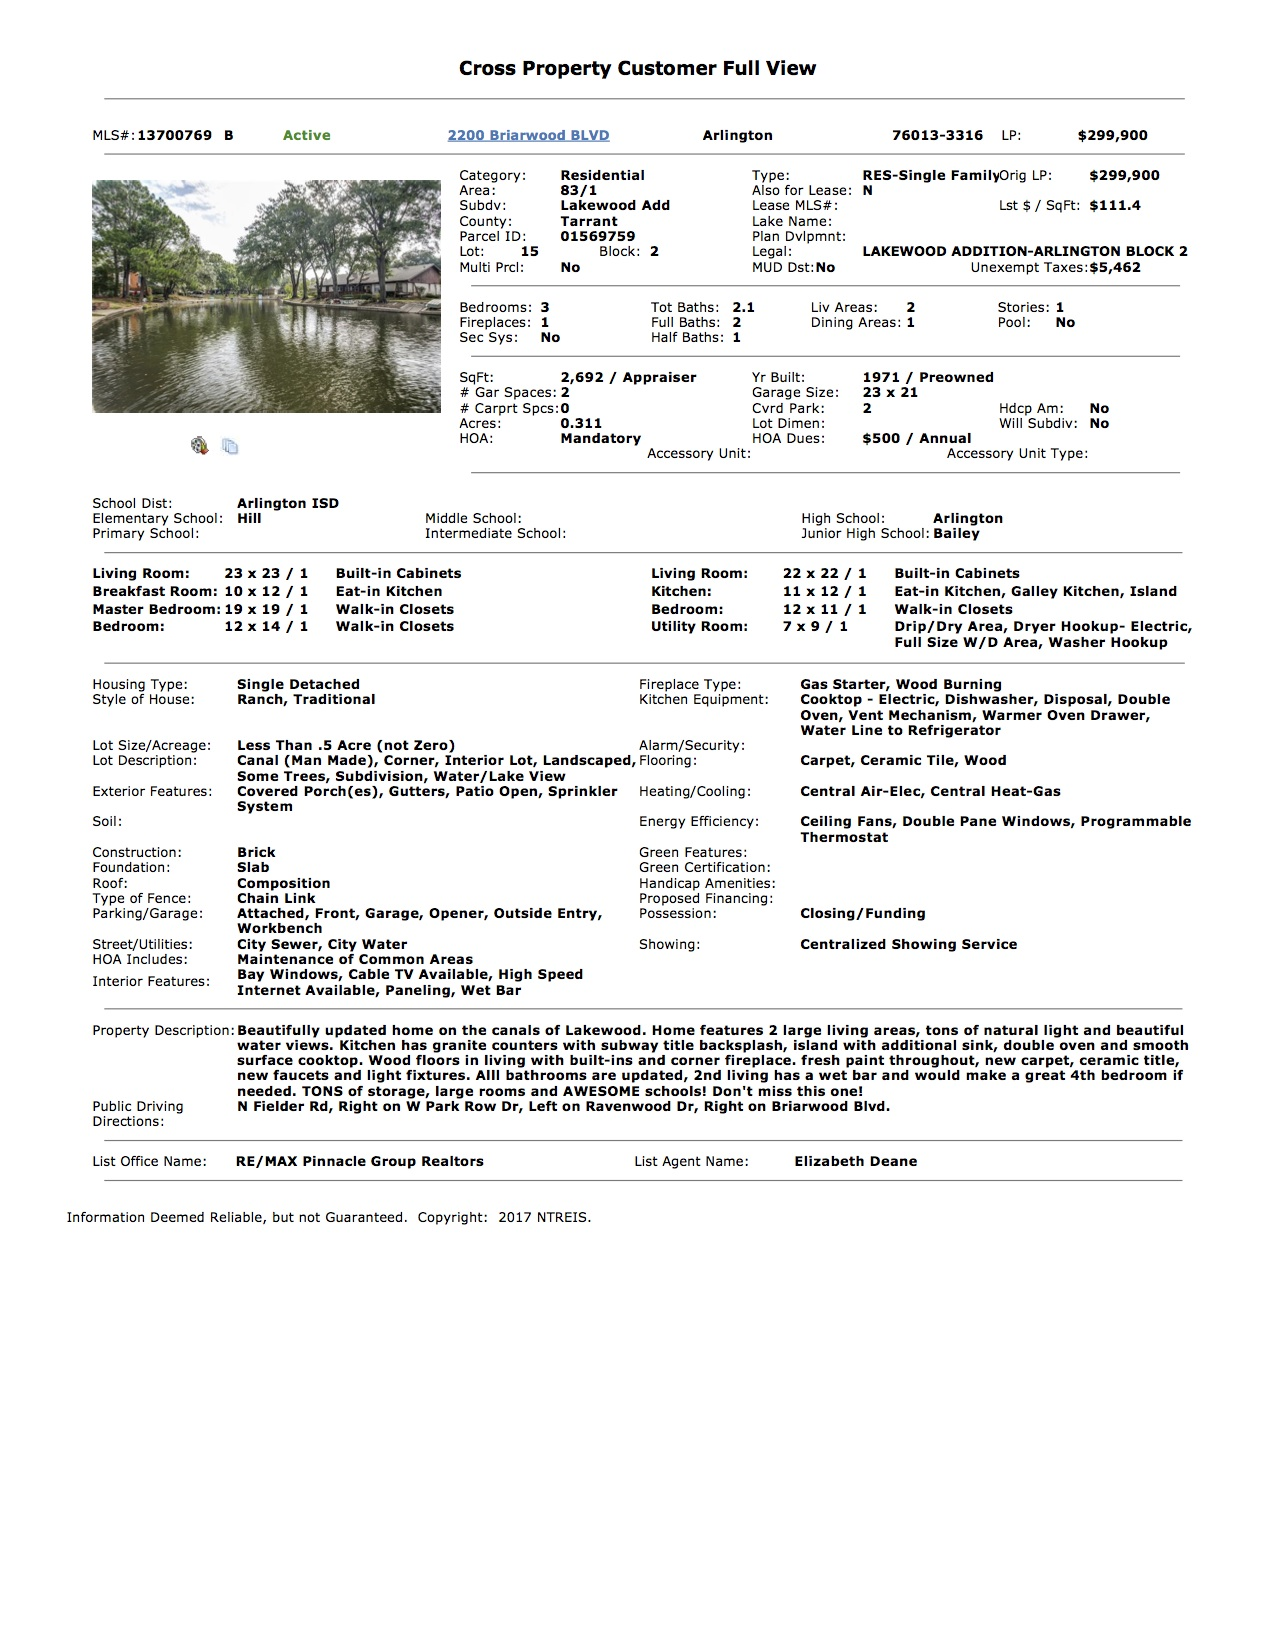 2200 <a href='http://www.thedeaneteam.com/index.php?types[]=1&types[]=2&areas[]=neighborhood:Briarwood&beds=0&baths=0&min=0&max=100000000&map=0&quick=1&submit=Search' title='Search Properties in Briarwood'>Briarwood</a> Blvd